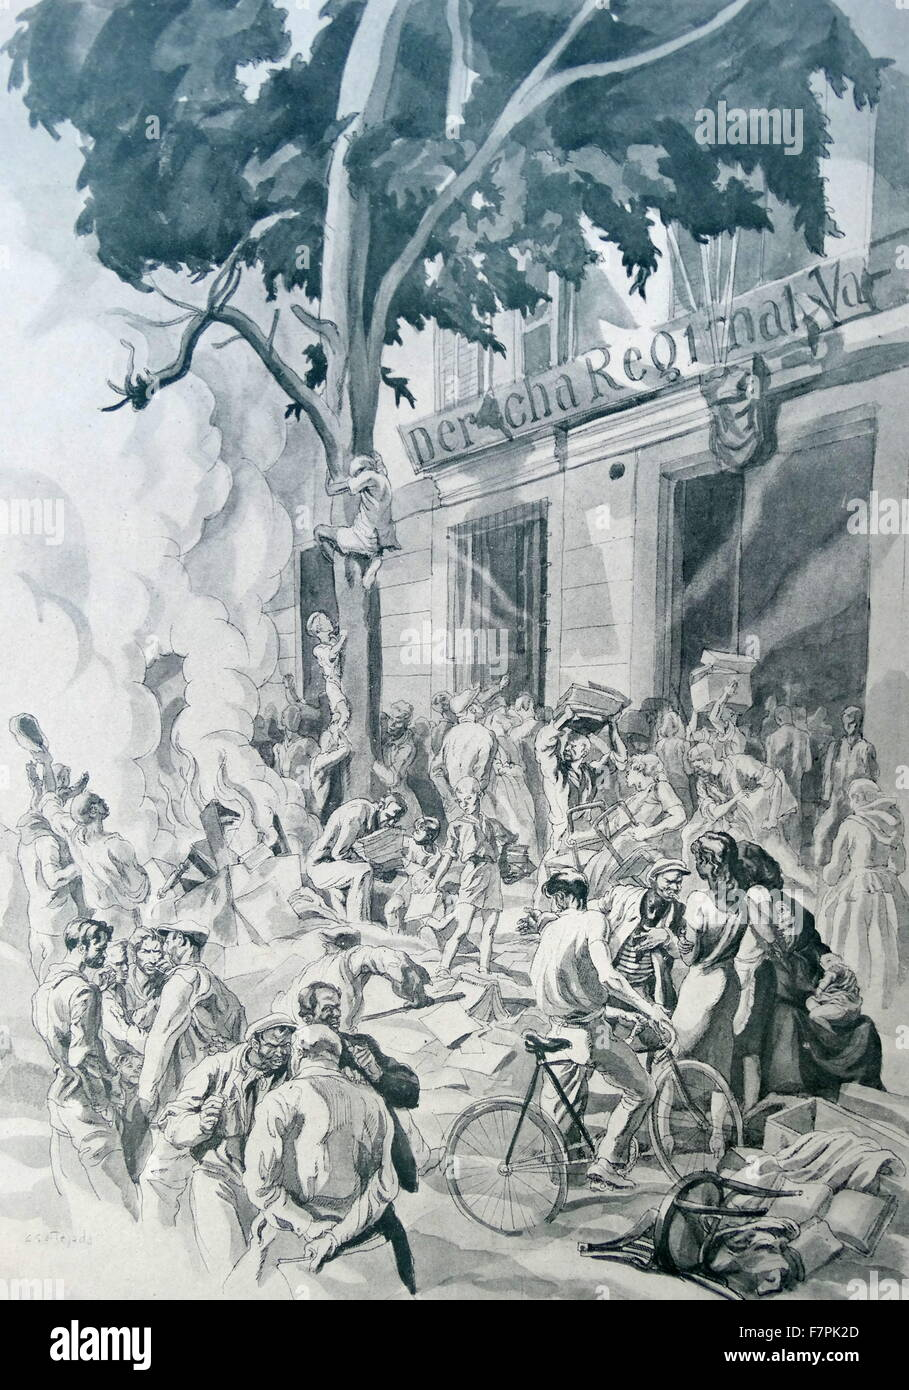 Propaganda illustration by Carlos Saenz De Tejada depicting looting by anarchist forces of a regional government - Stock Image